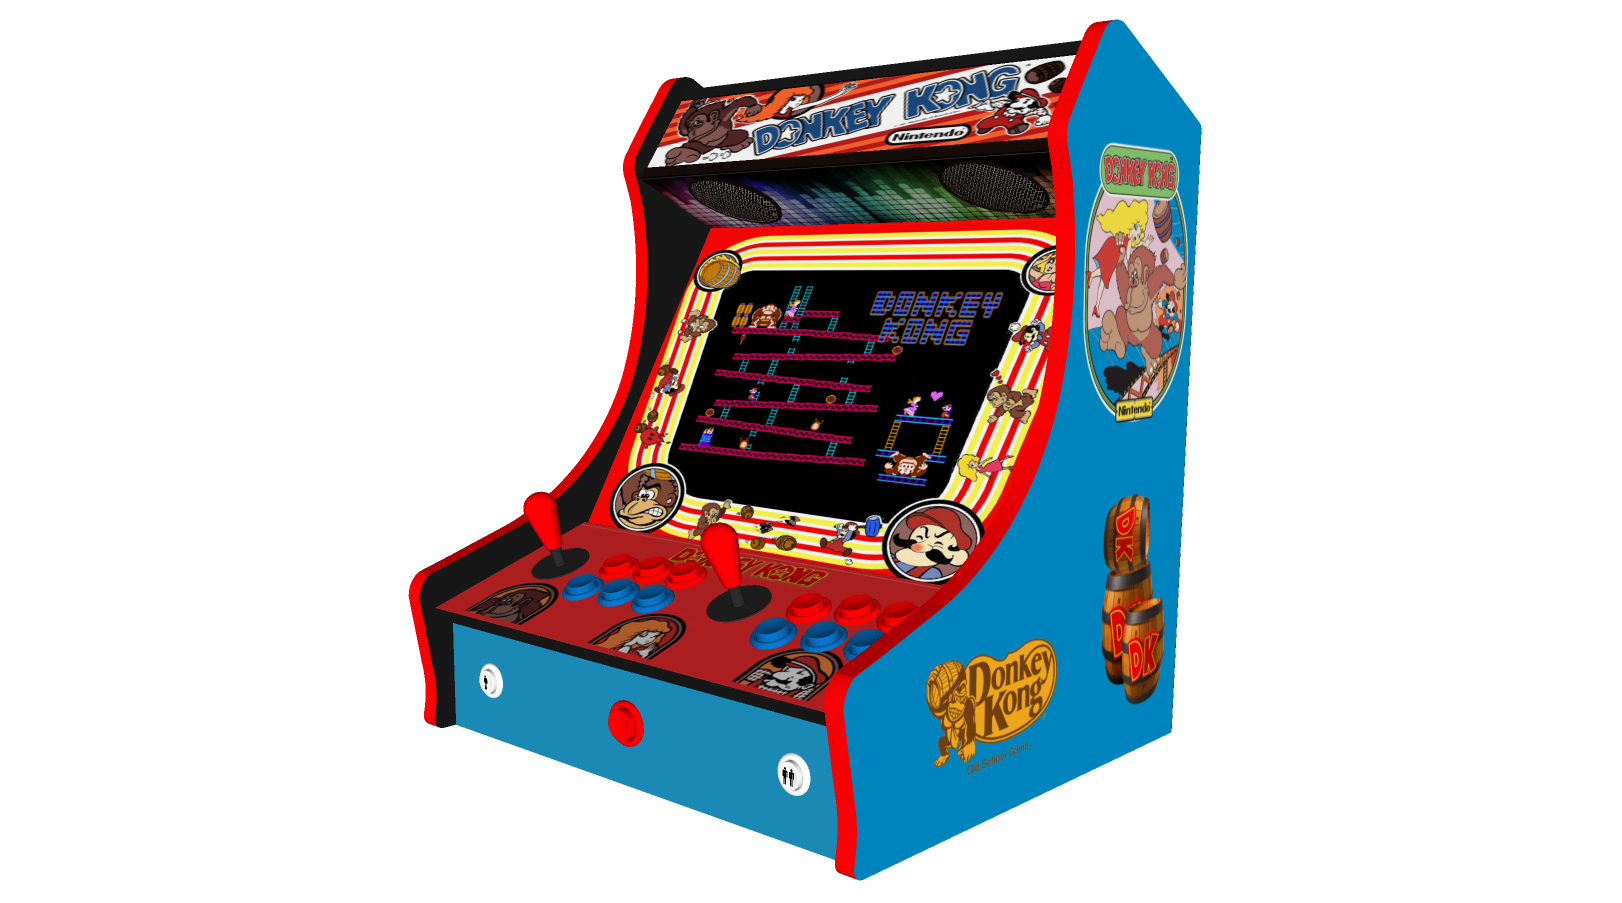 Retro Bartop Arcade Machine 520 Games Donkey Kong Art